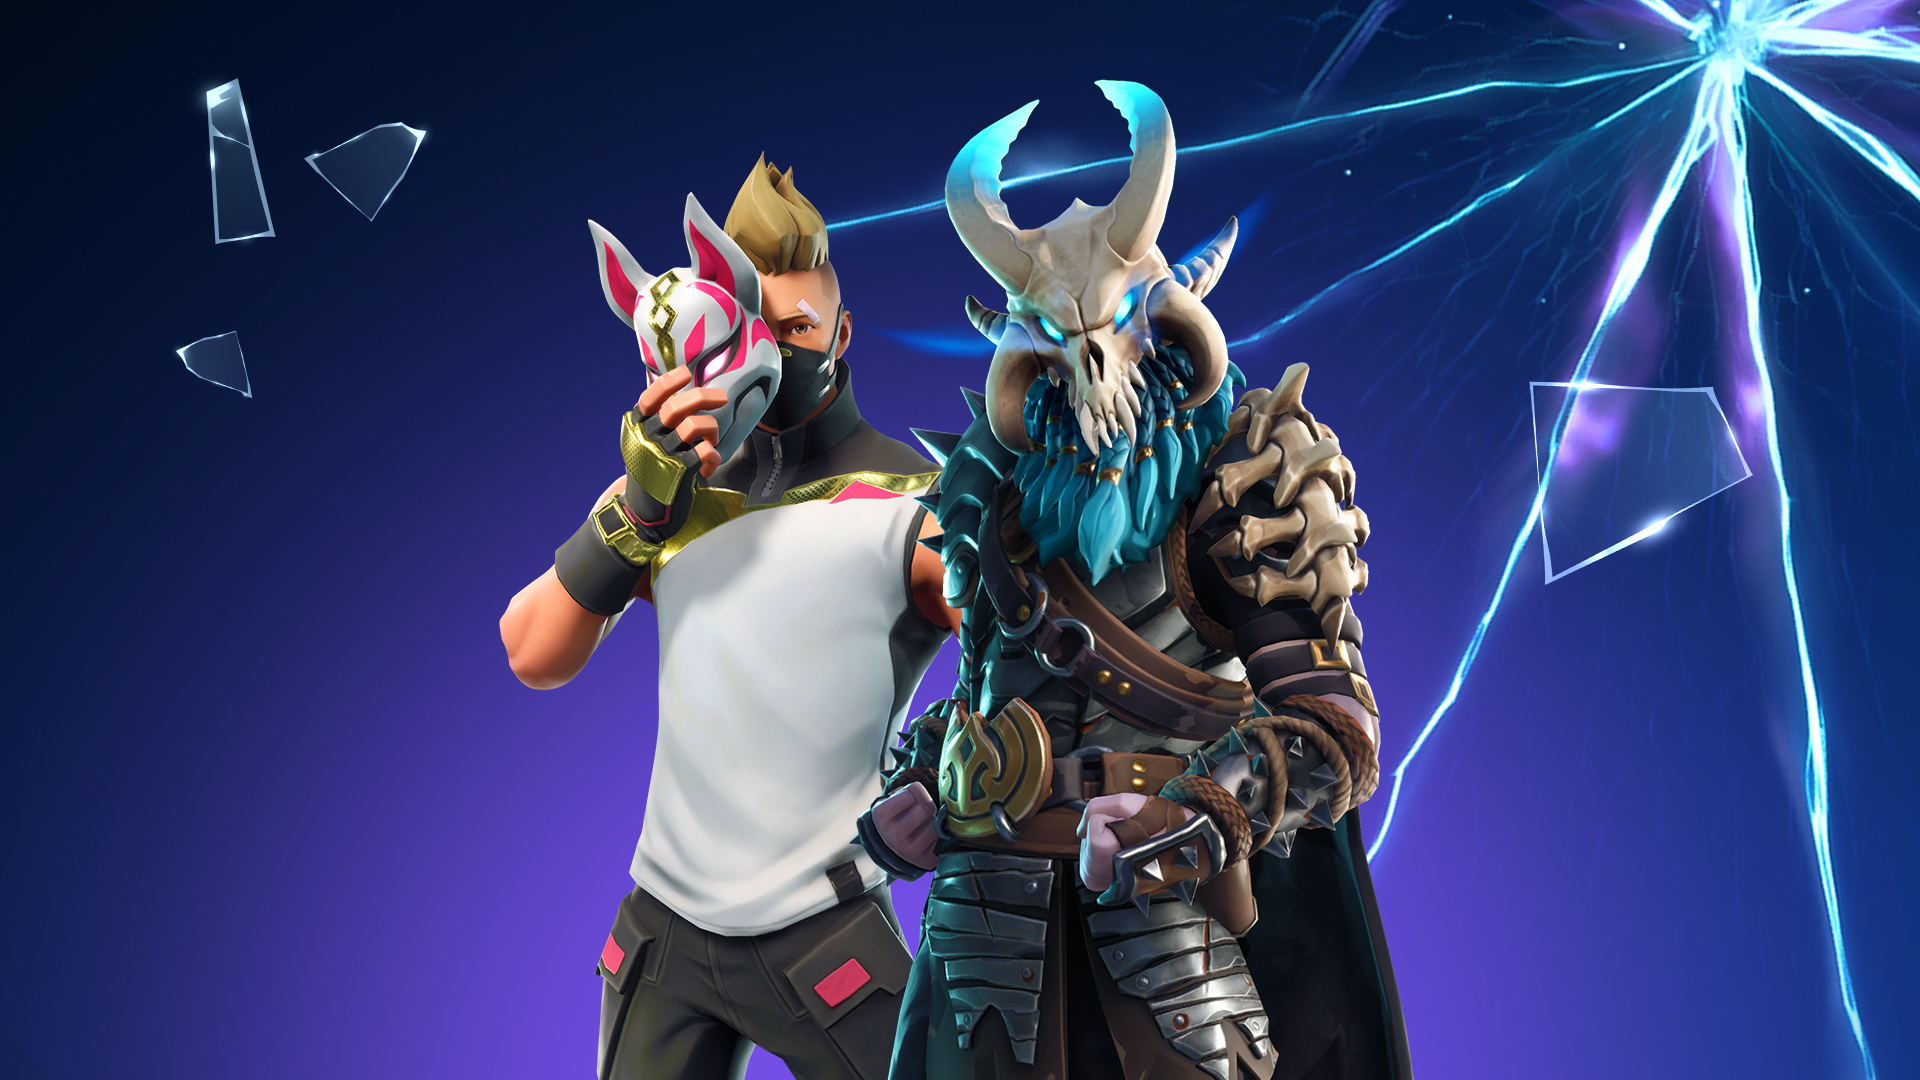 Fortnite Season 5 Background Hd Wallpaper Flip Wallpapers 1920x1080